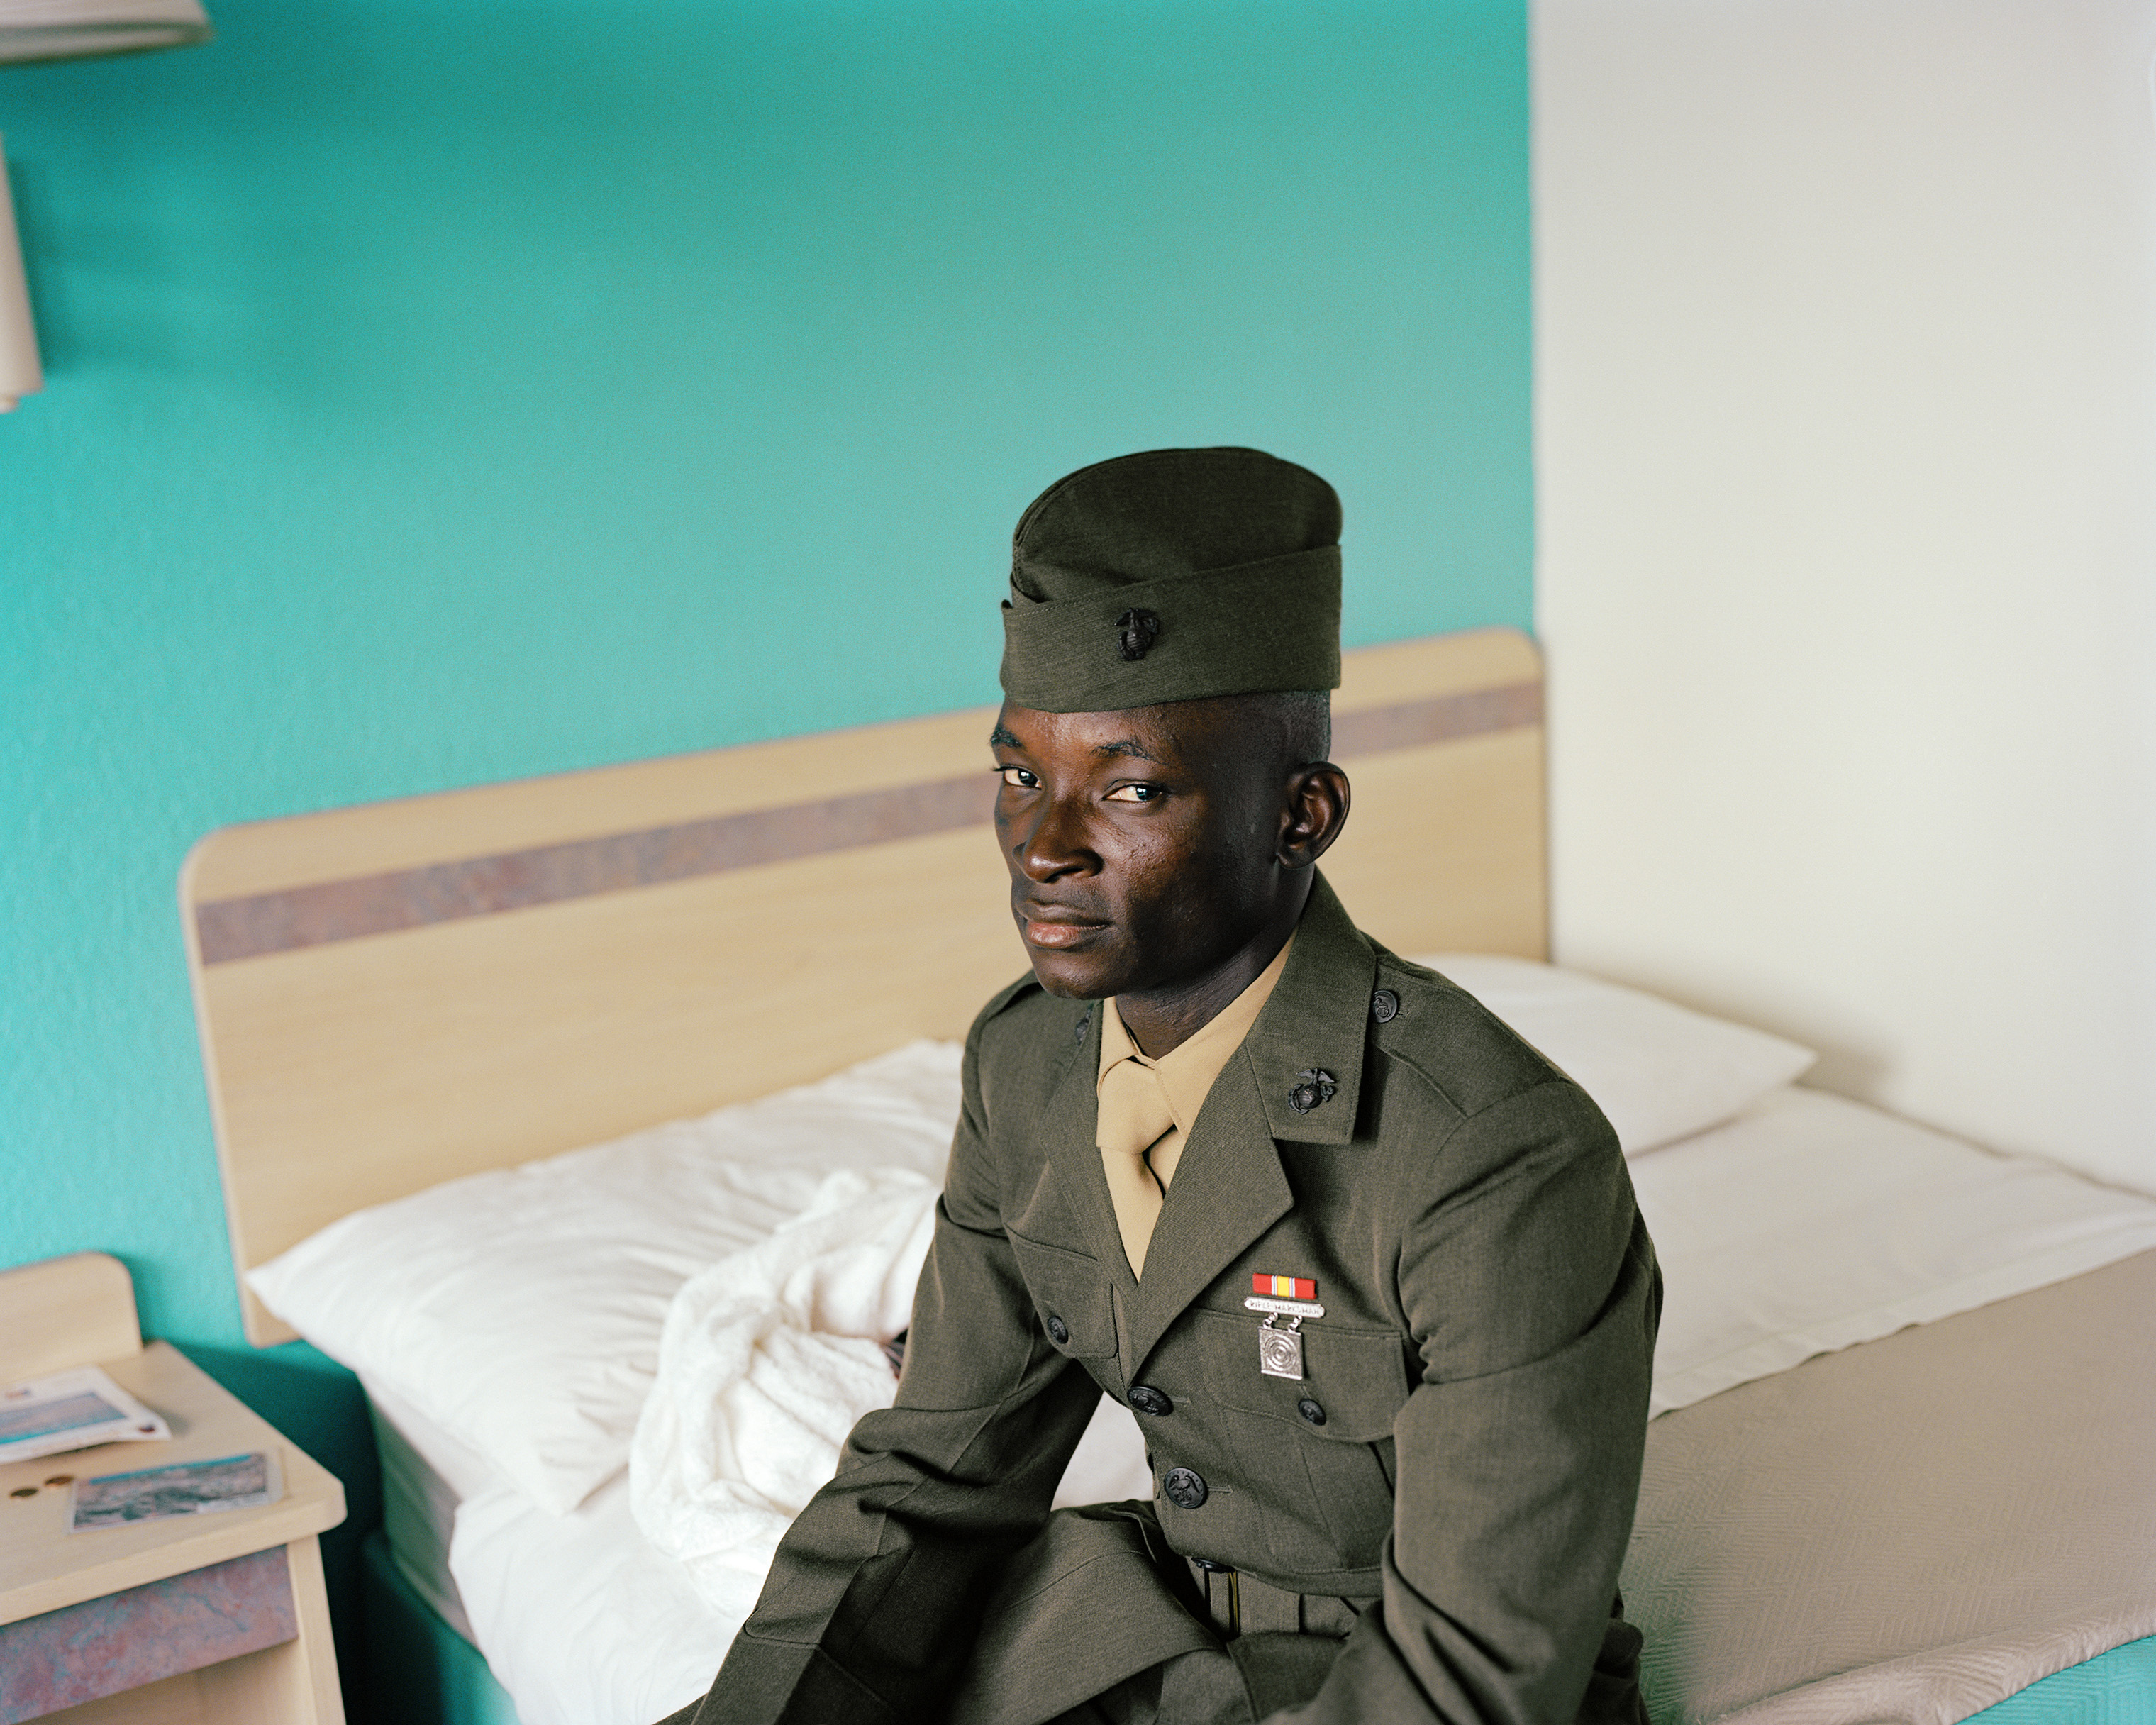 Marine, Hotel near airport, Richmond, VA, 2009, from the  By the Grace of God  series. Worsham is featured in several exhibitions, including  Southbound  at the Halsey.